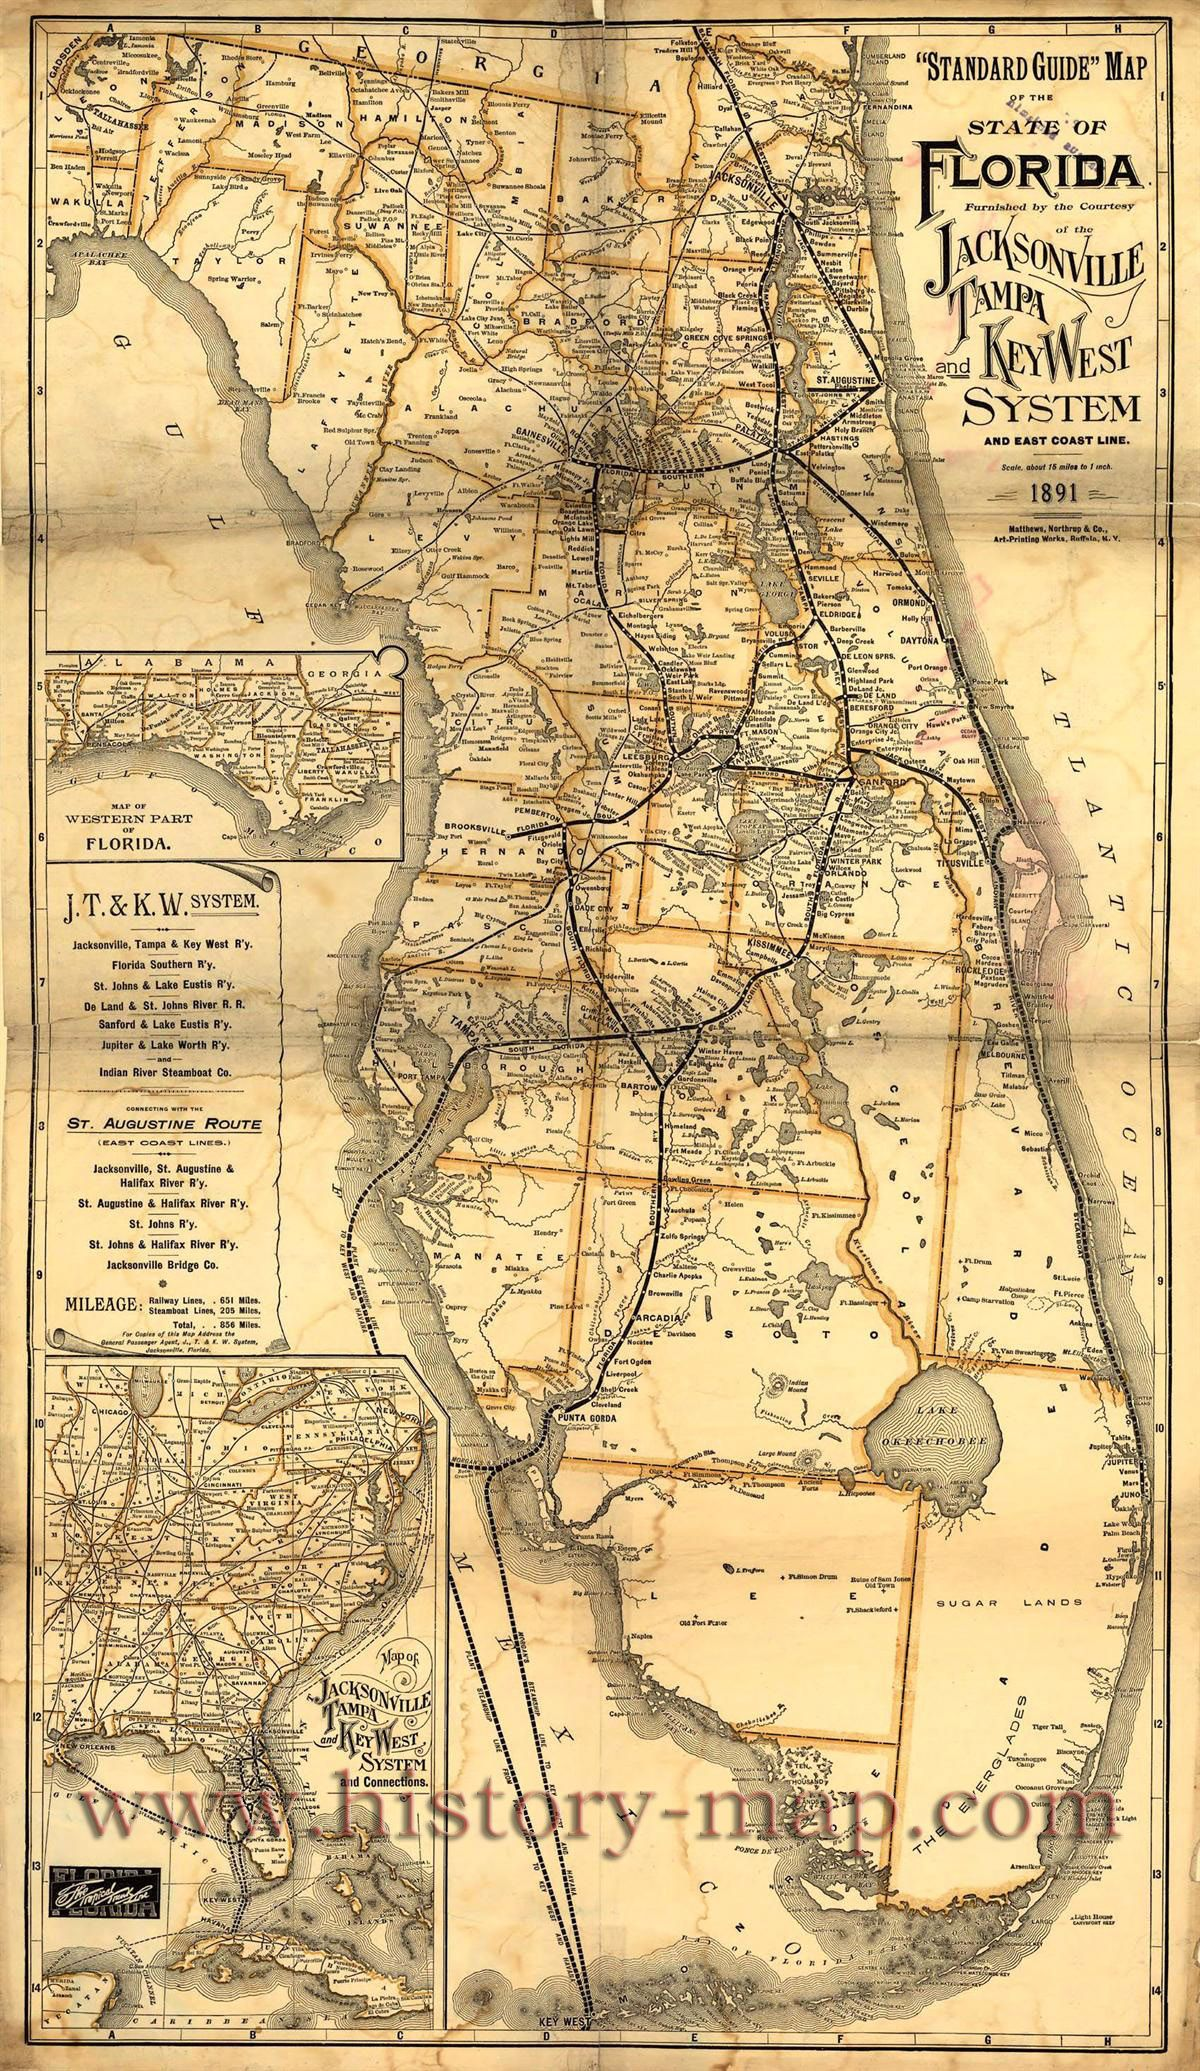 Pin By Gregg Bryant On Obsessed With Maps Vintage